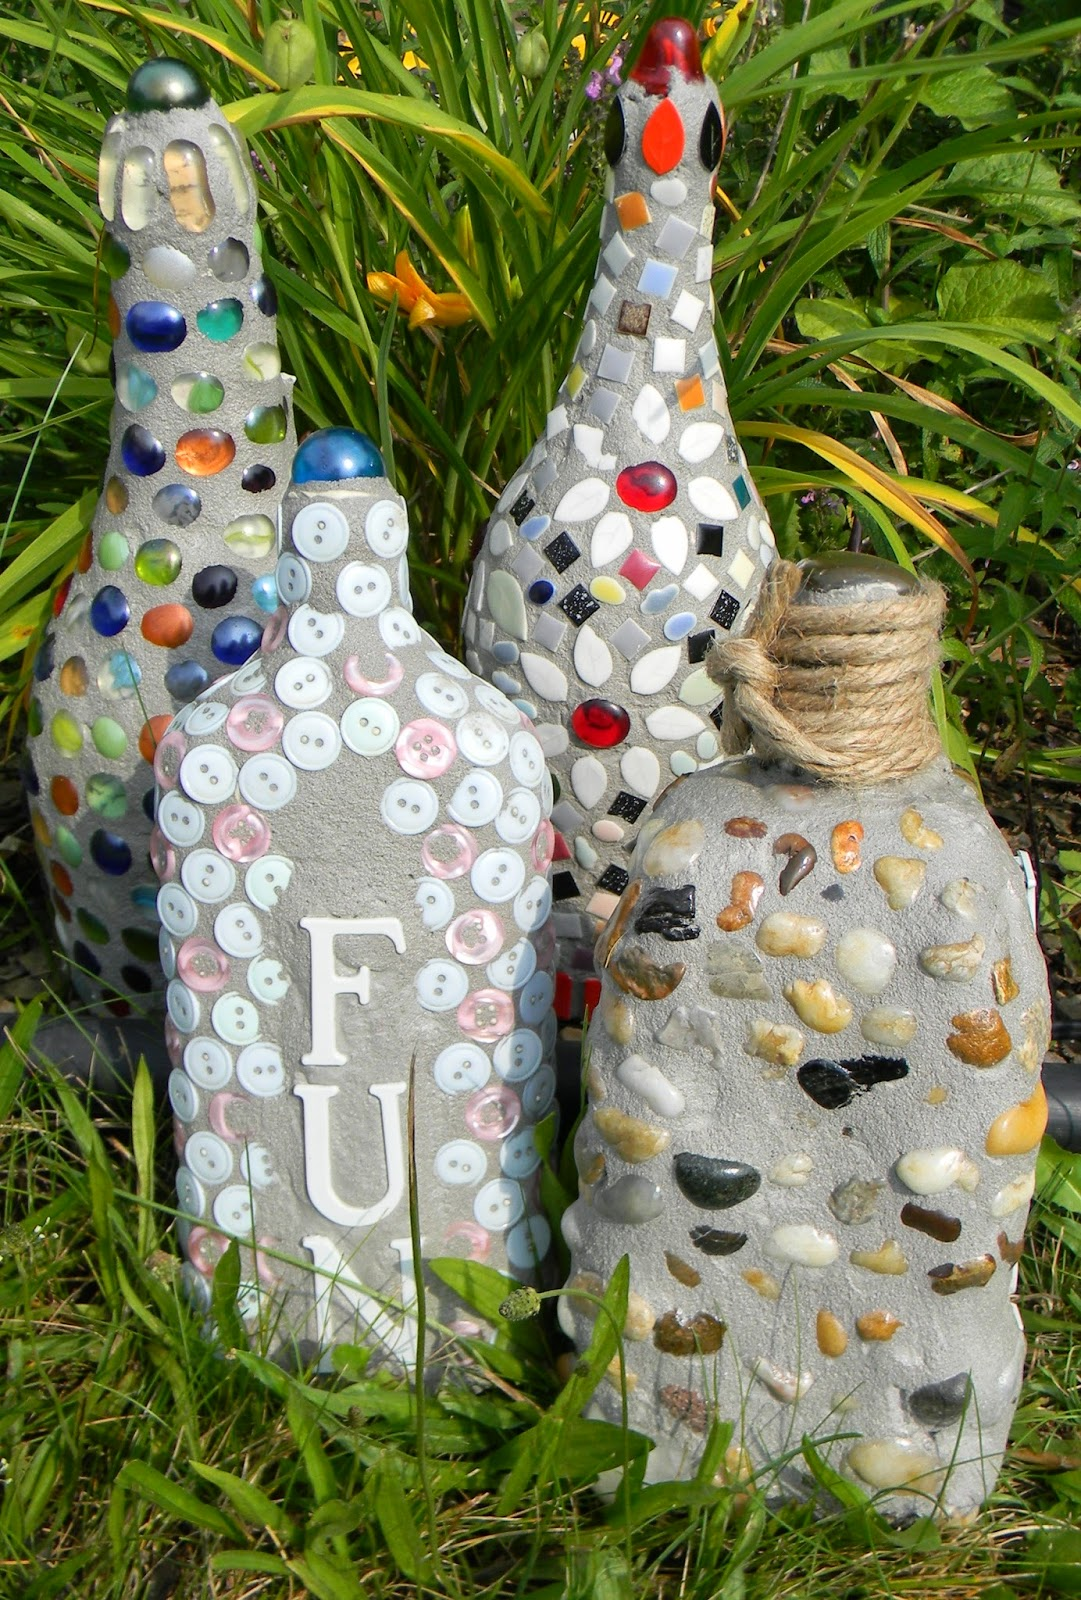 Artistic endeavors 101 recycled materials become garden decor for Garden decoration with waste material